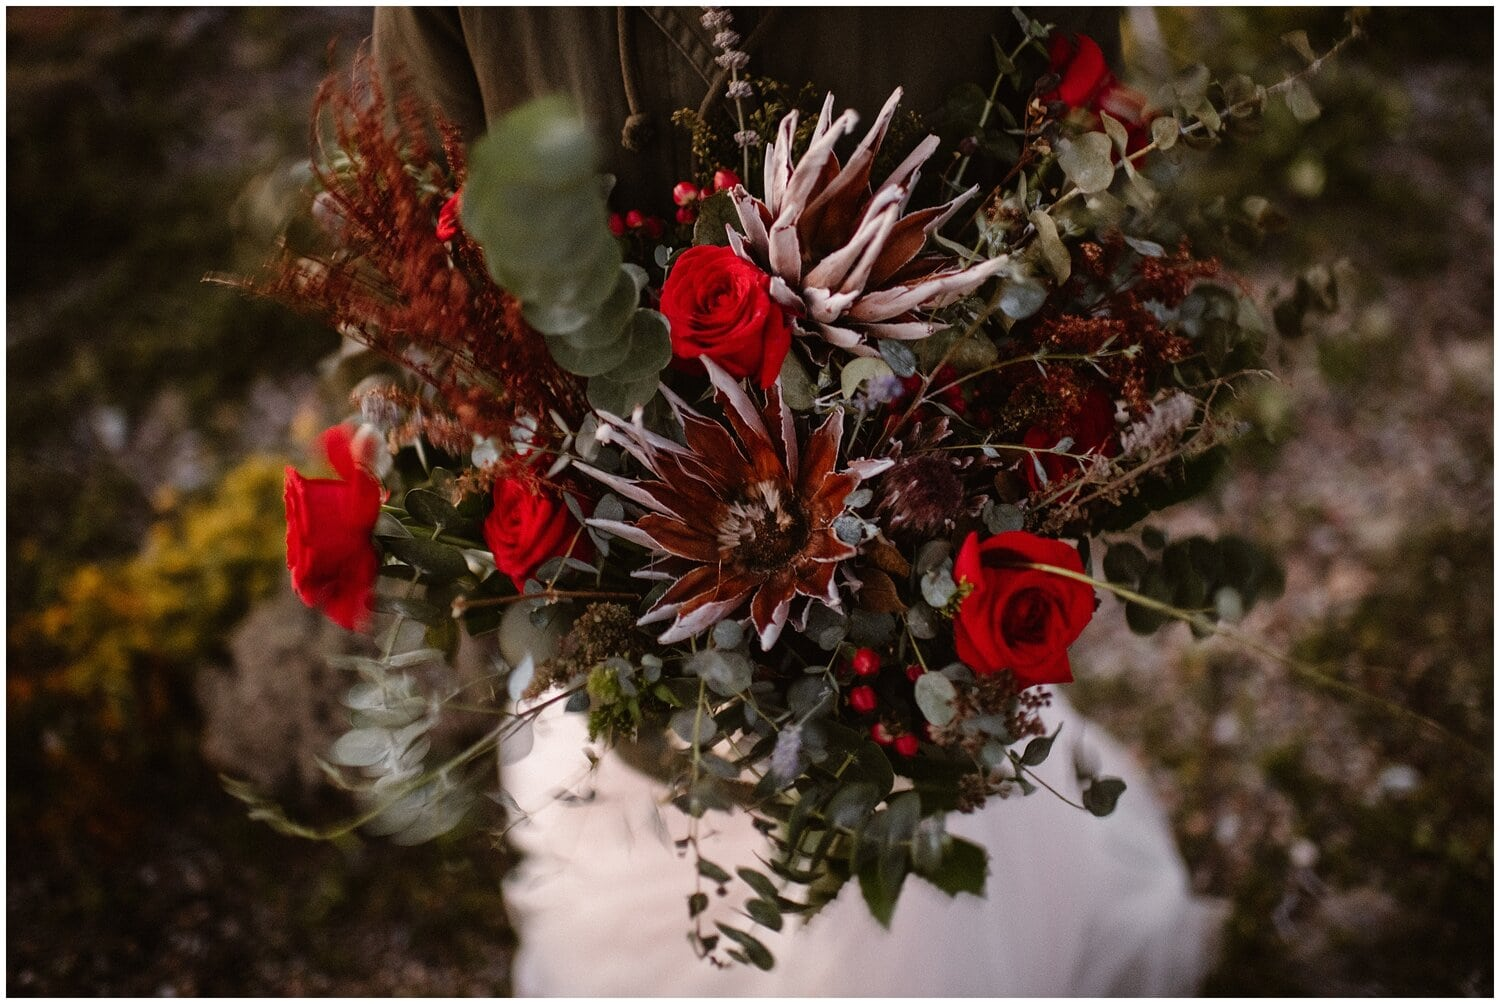 Close-up of red wedding flowers.